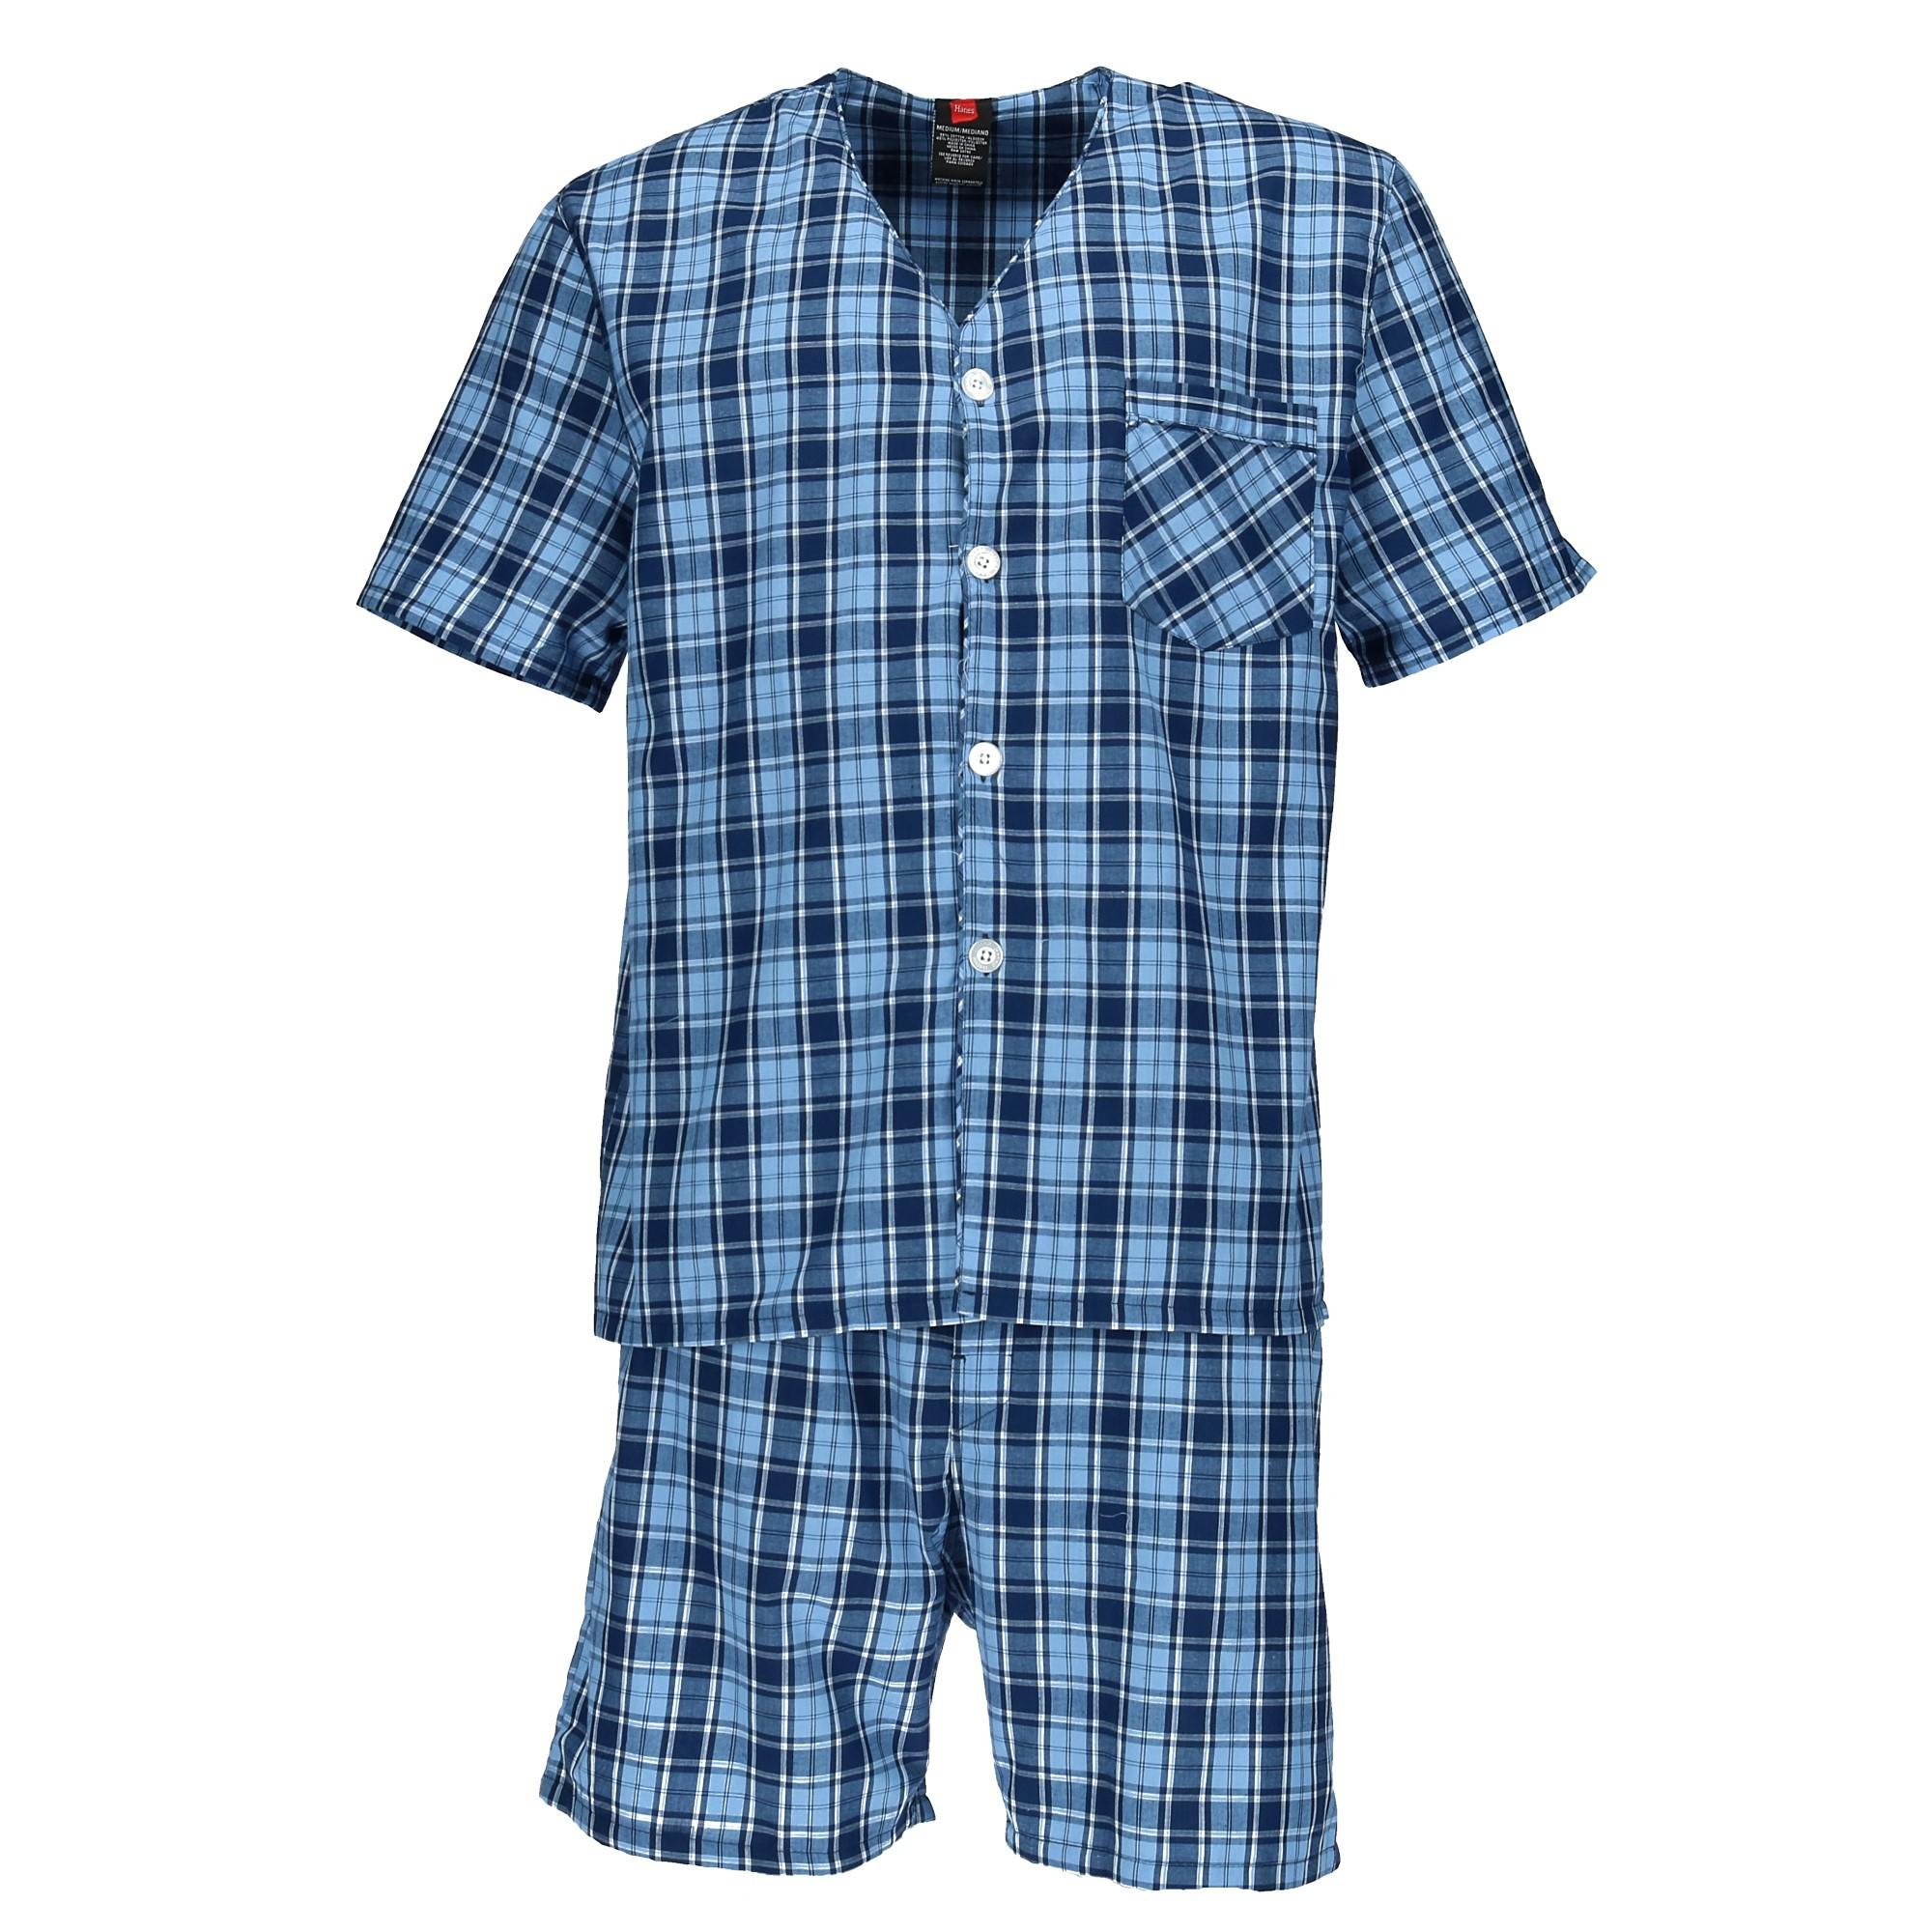 Hanes Big and Tall Short Sleeve Short Leg Pajama Set, 2X, New Blue Plaid